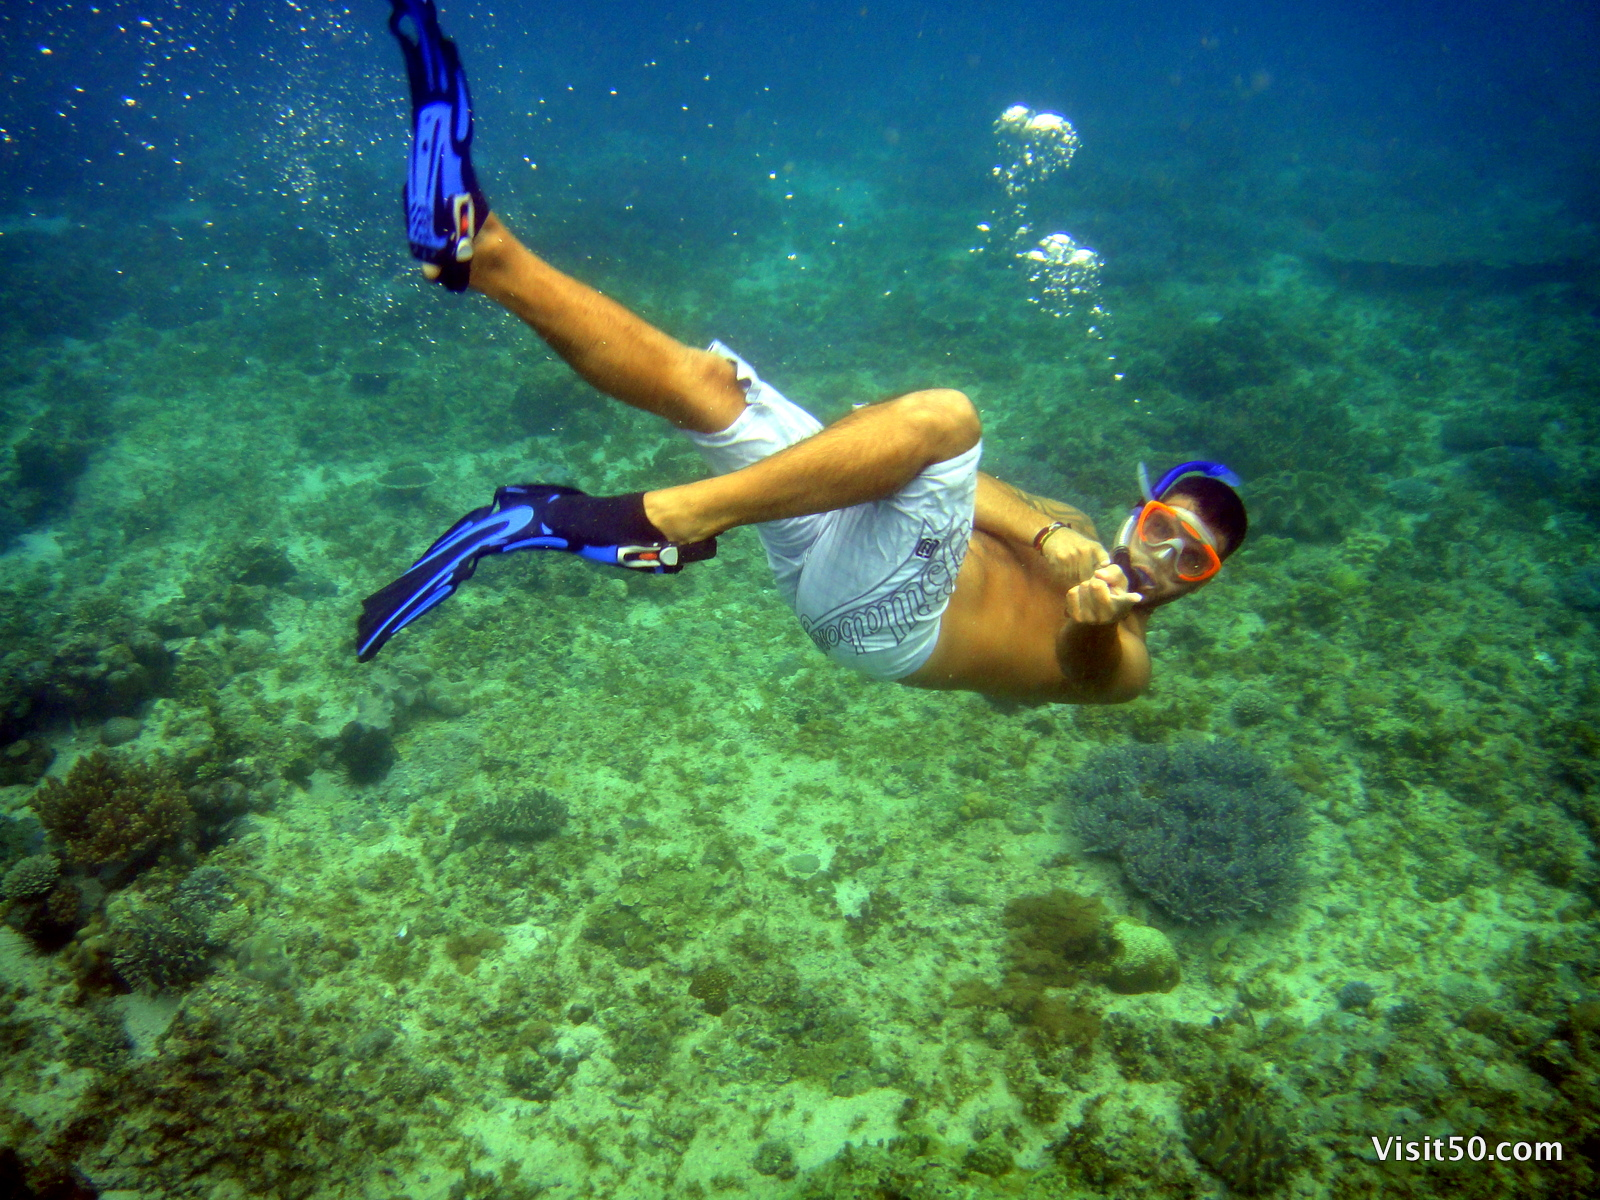 Snorkeling in the Philippines - Malapascua Island